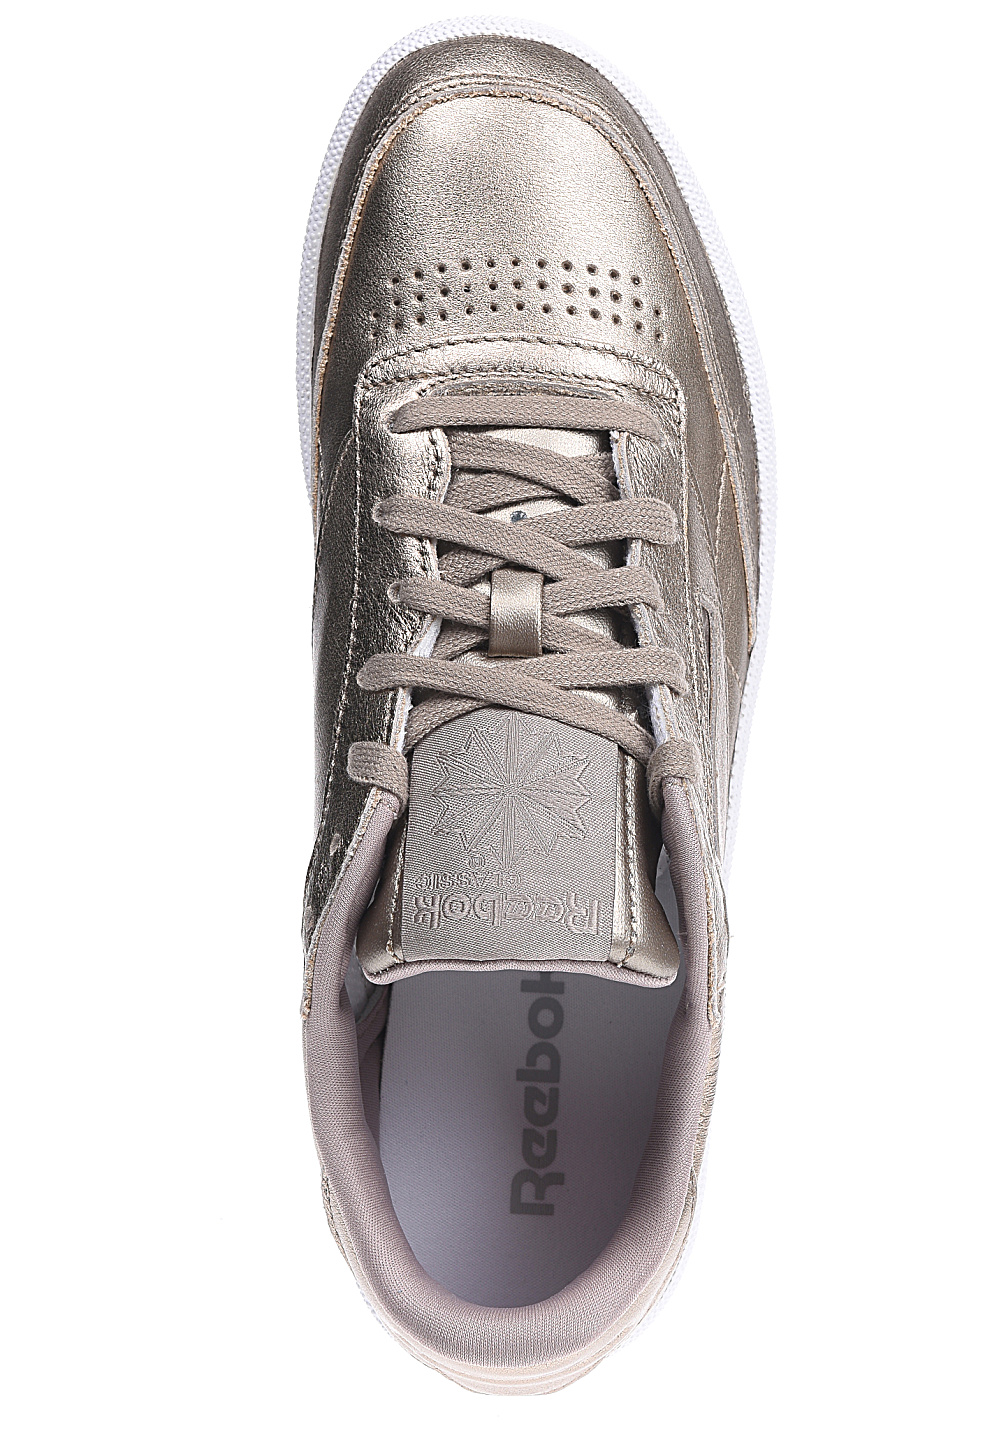 Reebok Club C 85 Melted Metal Sneakers for Women Gold